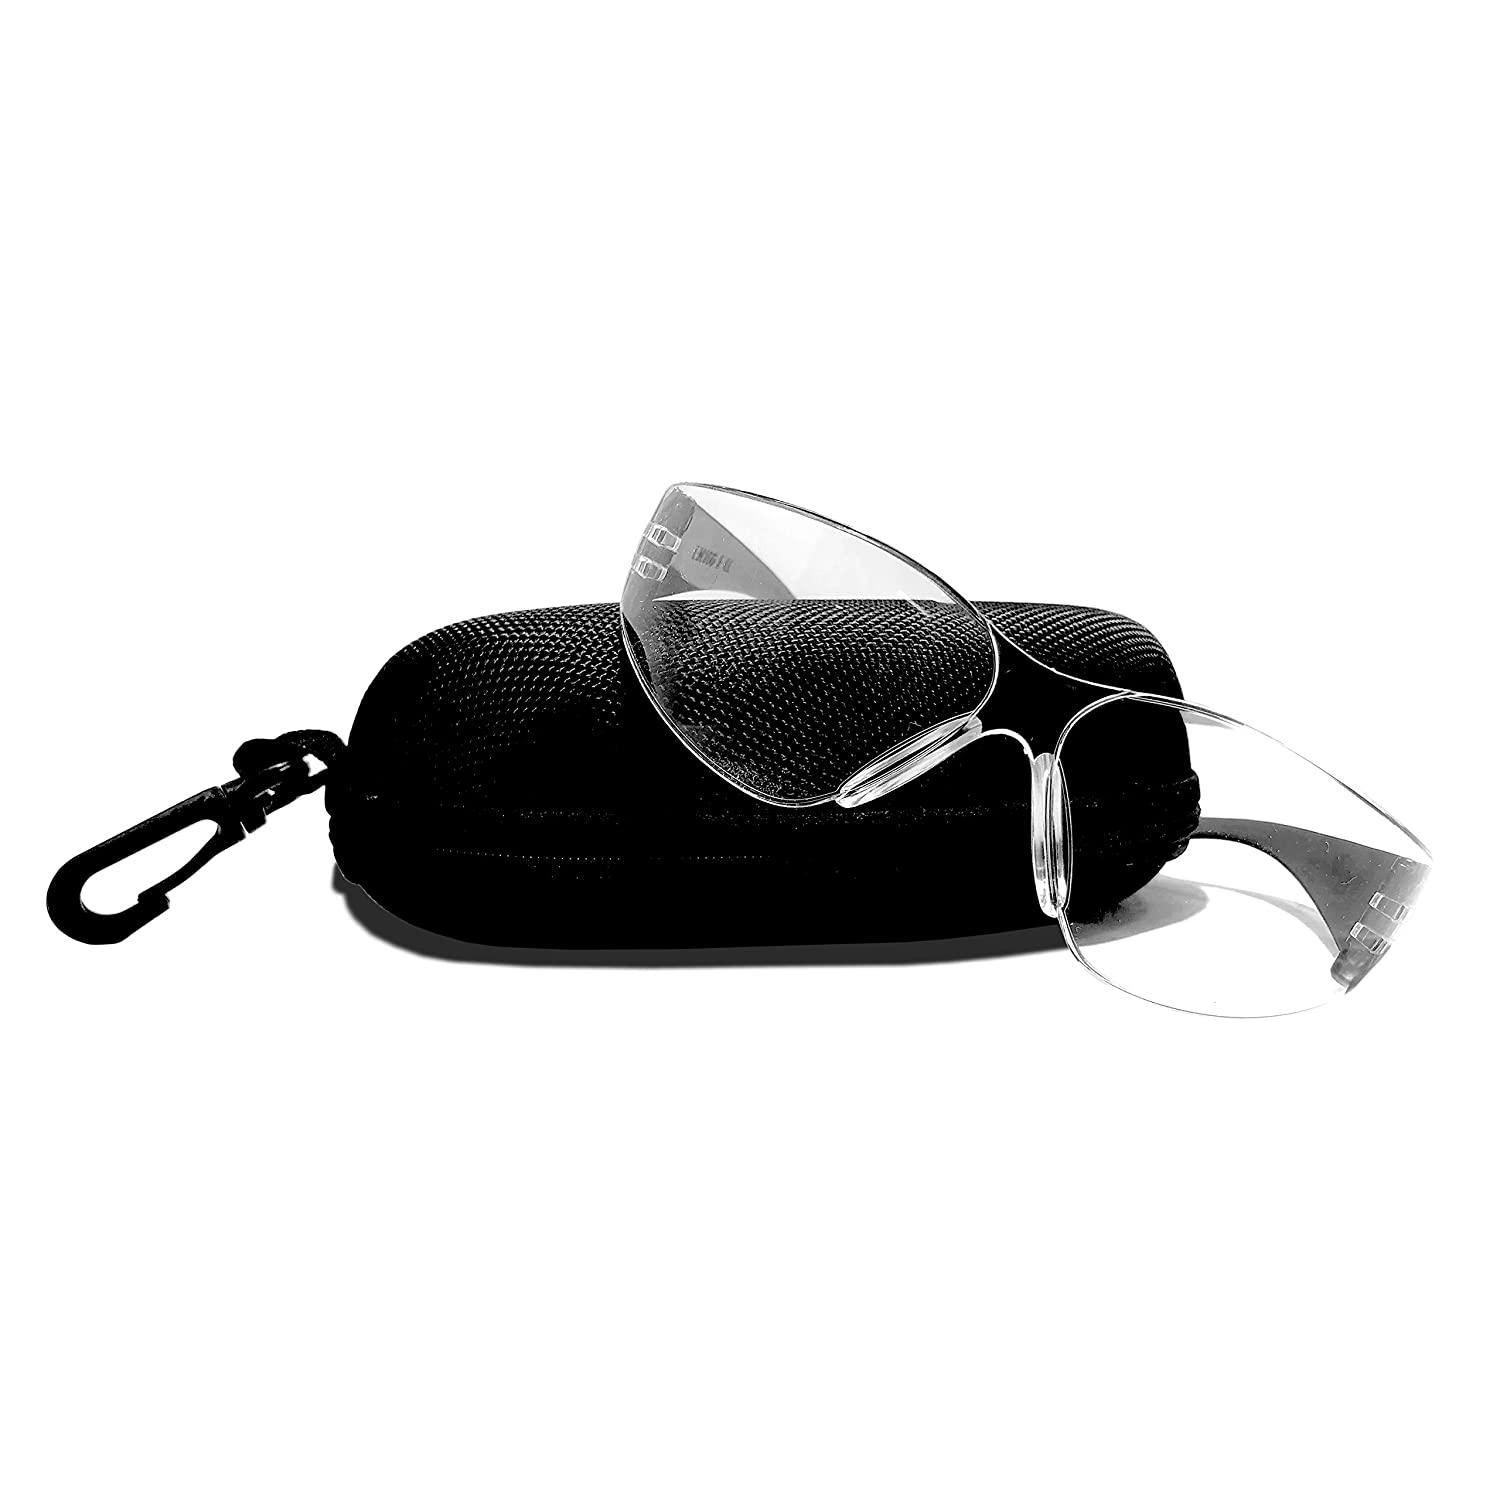 Pretend Play Kids Safety Glasses – Impact Resistant Play Protective Eyewear For Children – 1 Pair BM-139